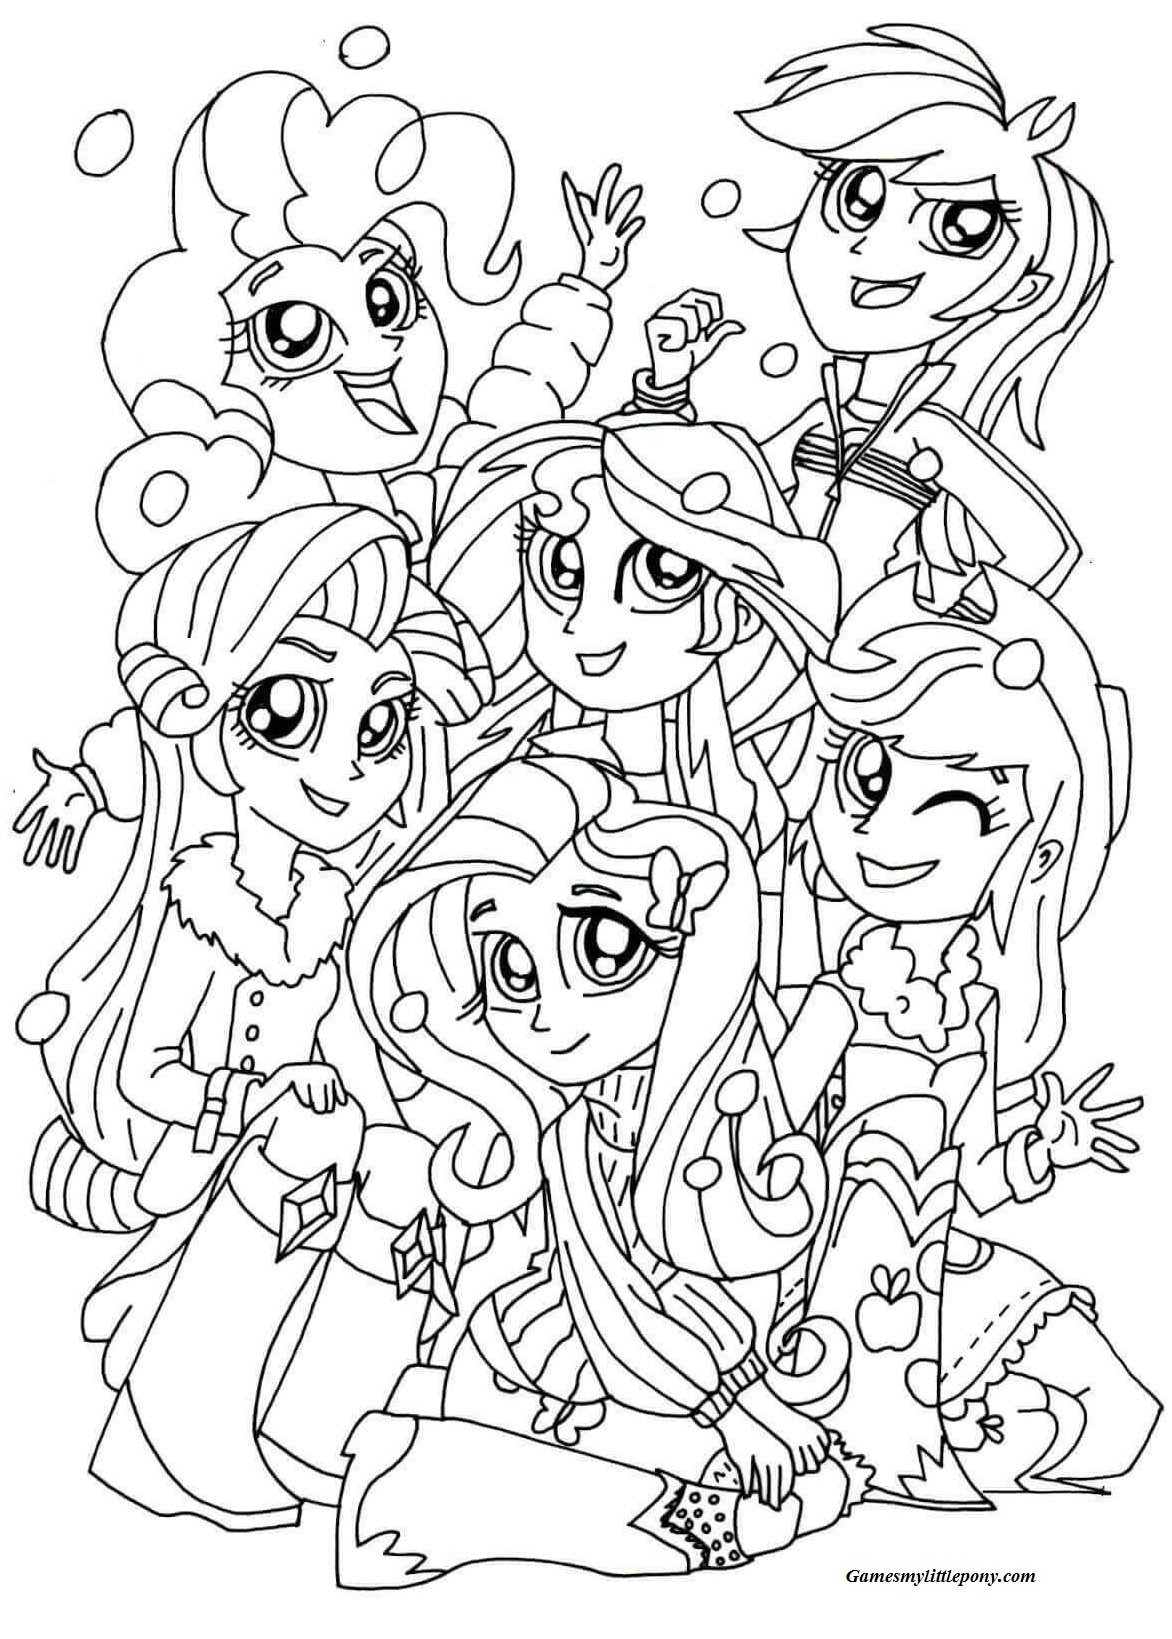 My Little Pony Equestria Girl Christmas Coloring Pages